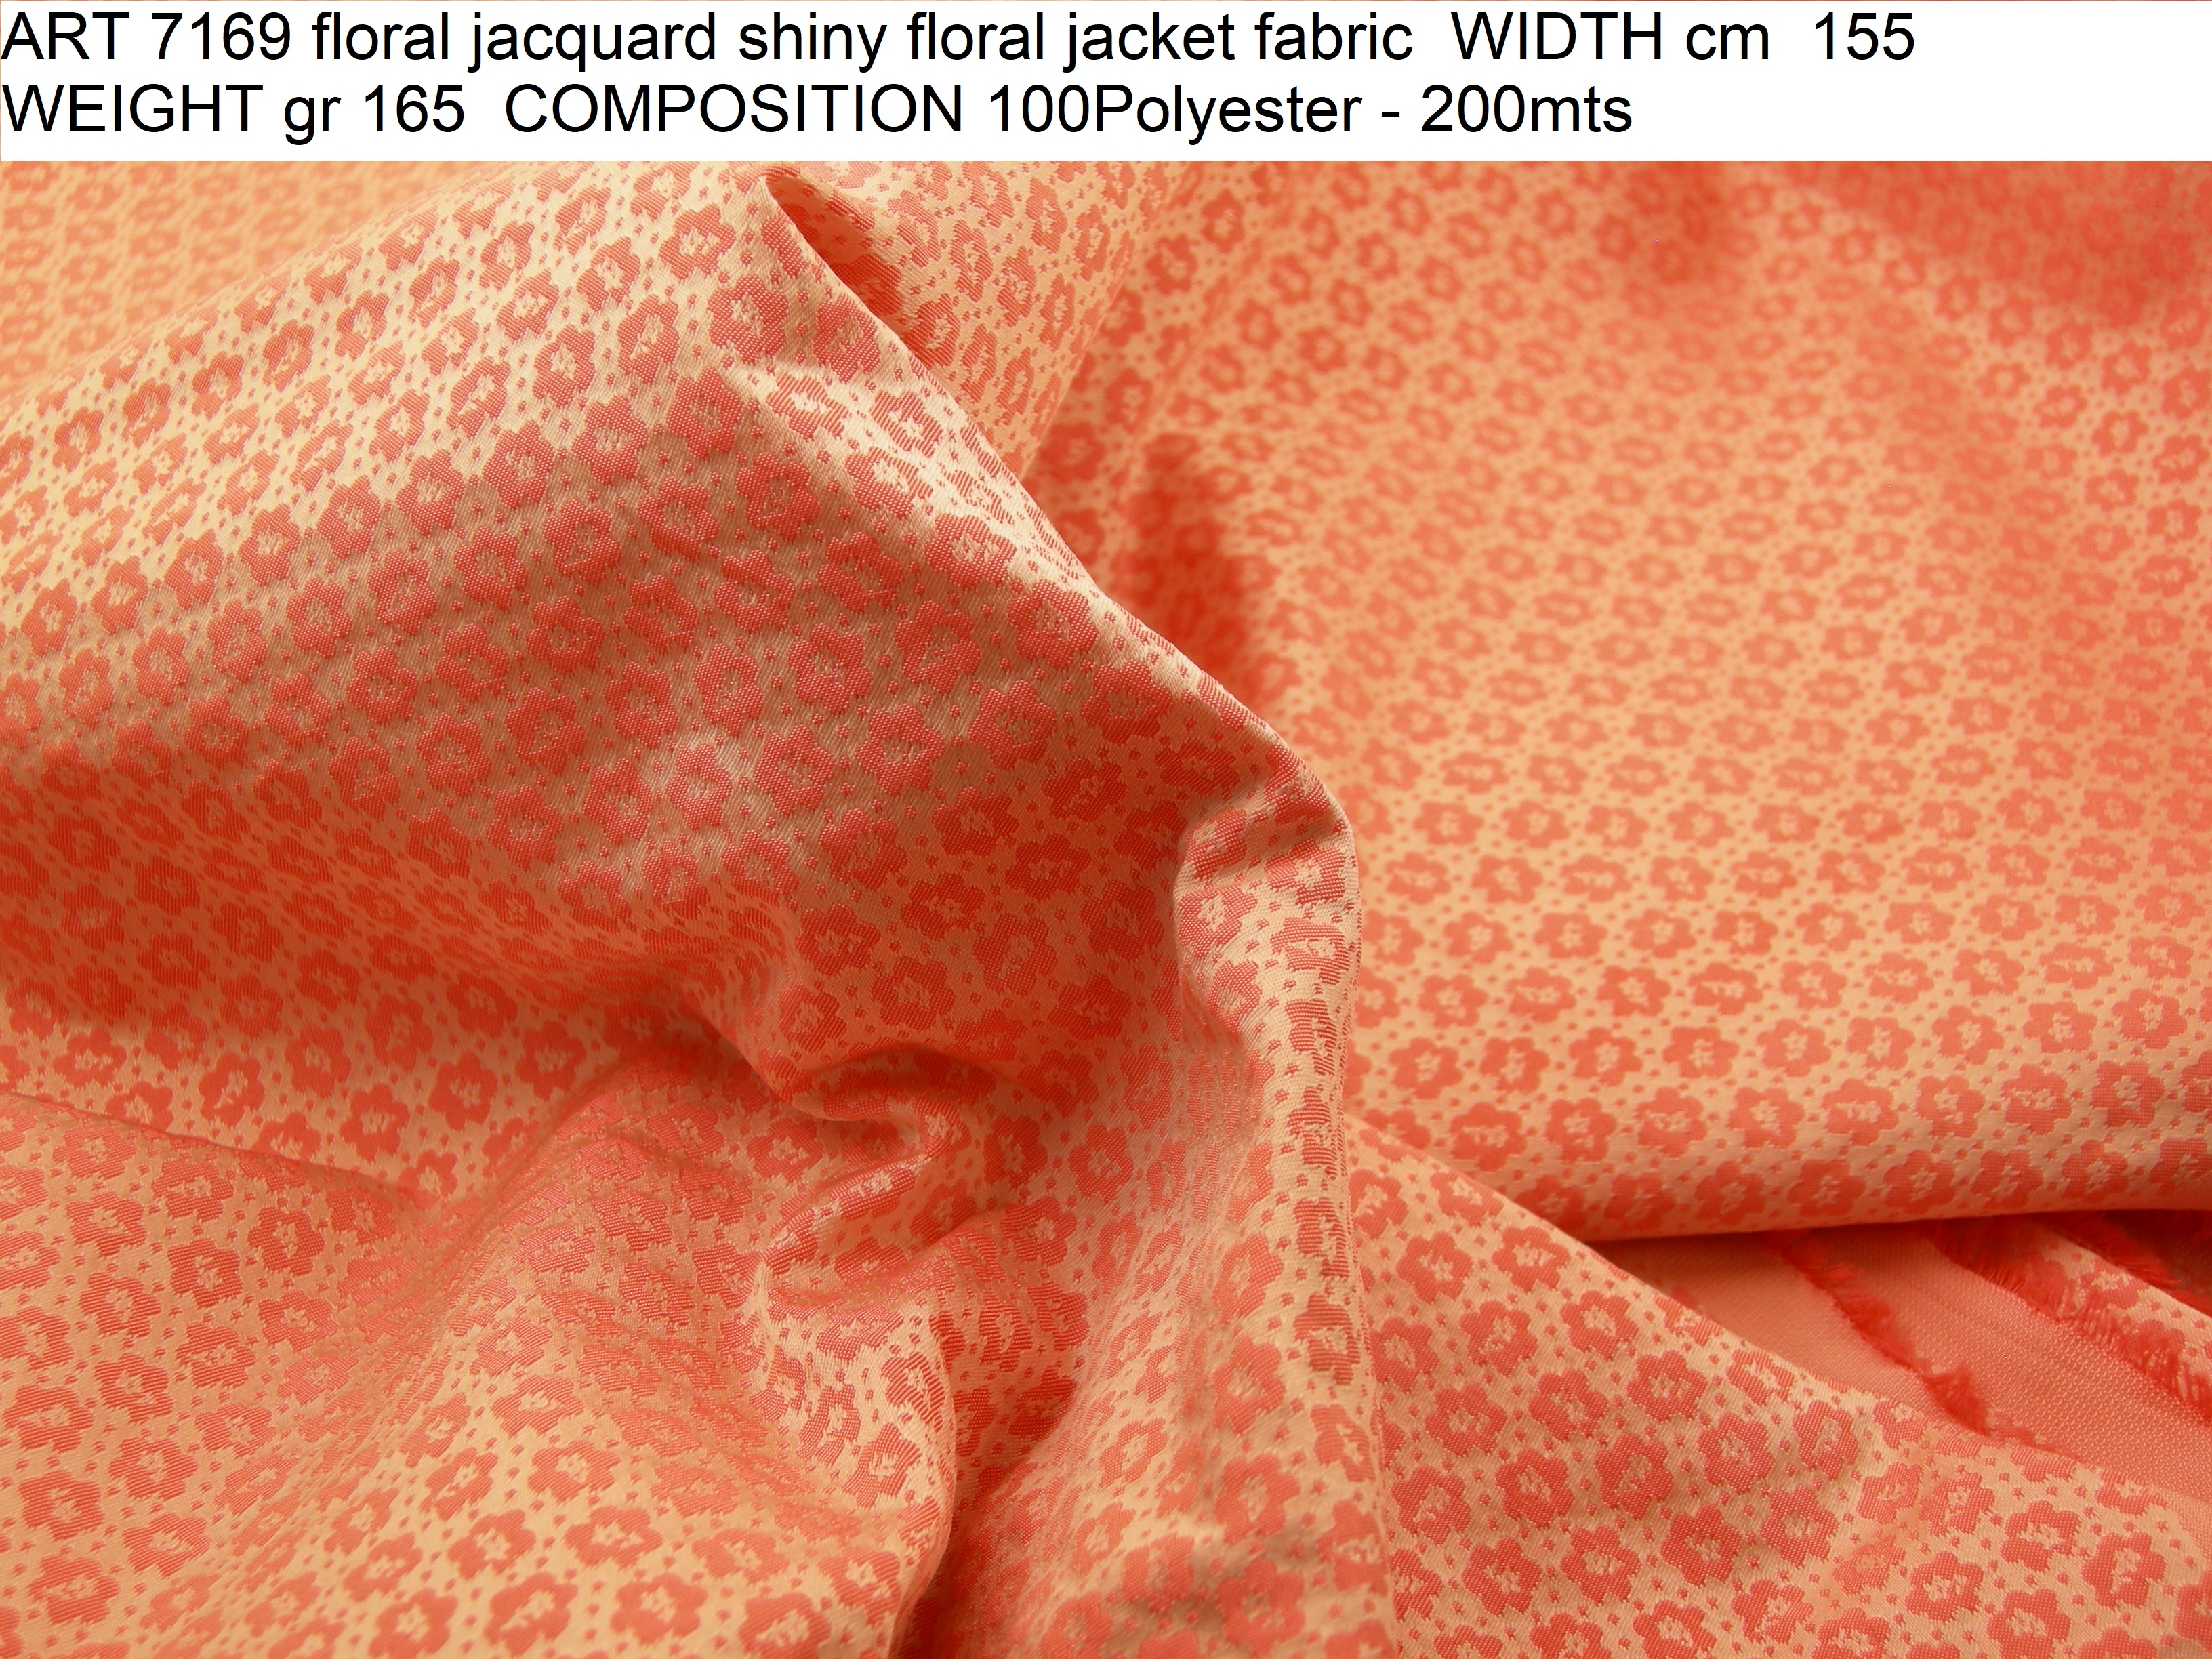 ART 7169 floral jacquard shiny floral jacket fabric WIDTH cm 155 WEIGHT gr 165 COMPOSITION 100Polyester - 200mts